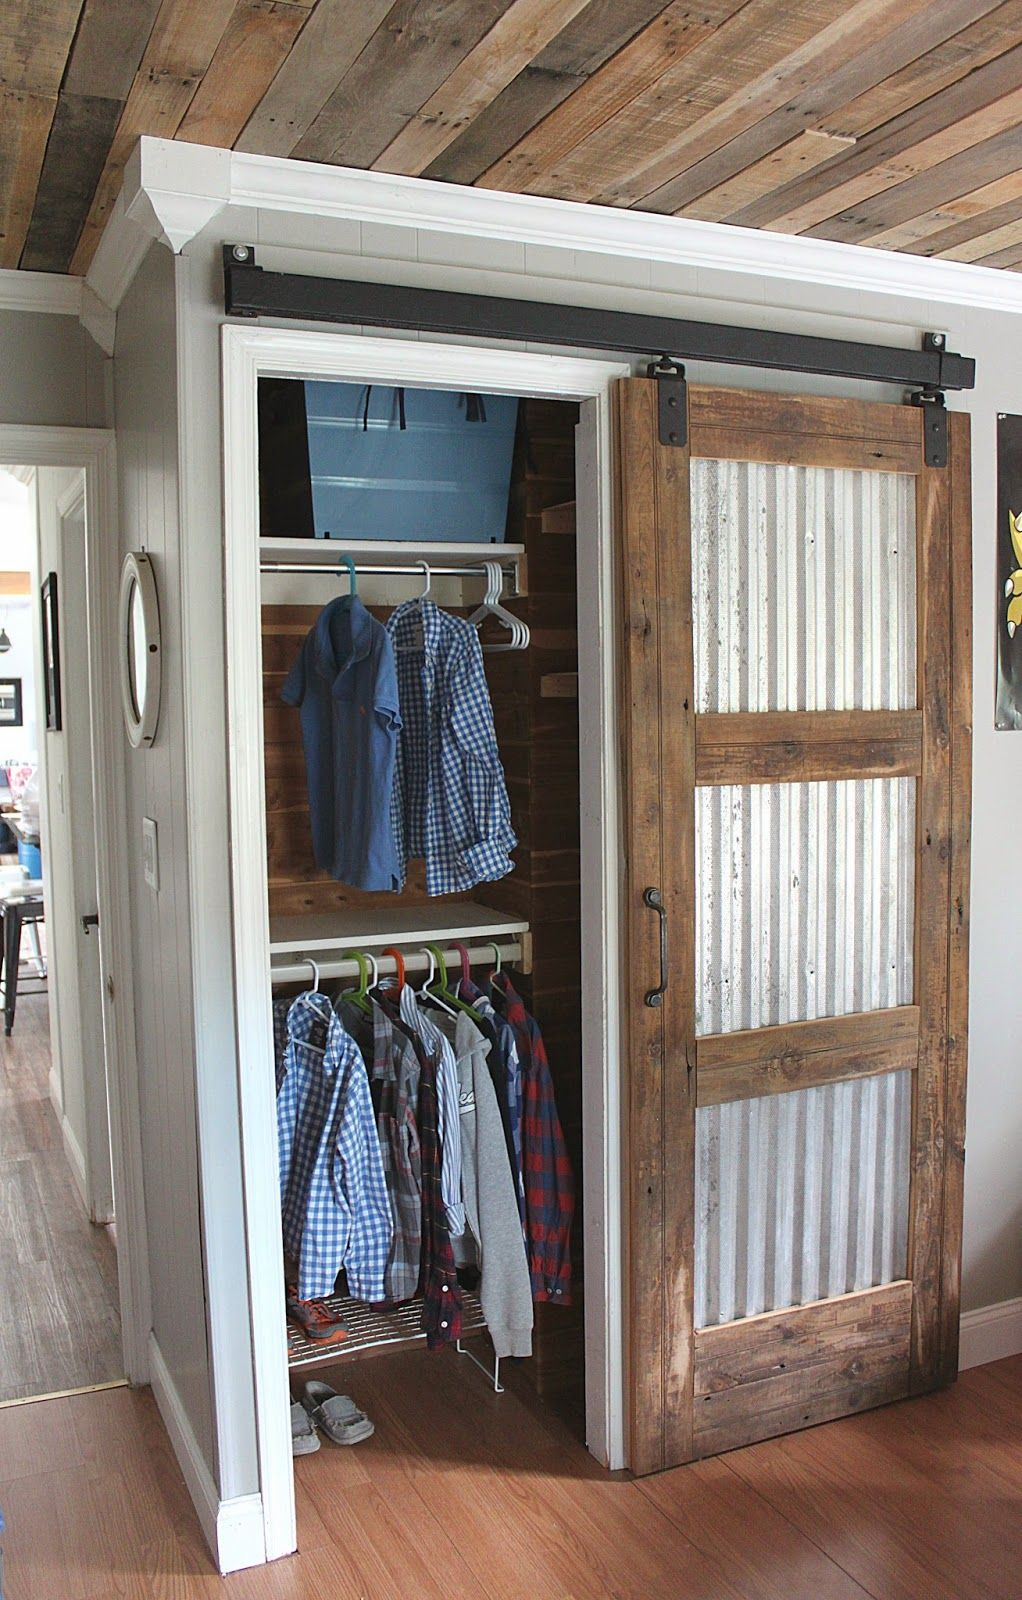 20 DIY Barn Door Tutorials | Remodel | Barn door closet ...